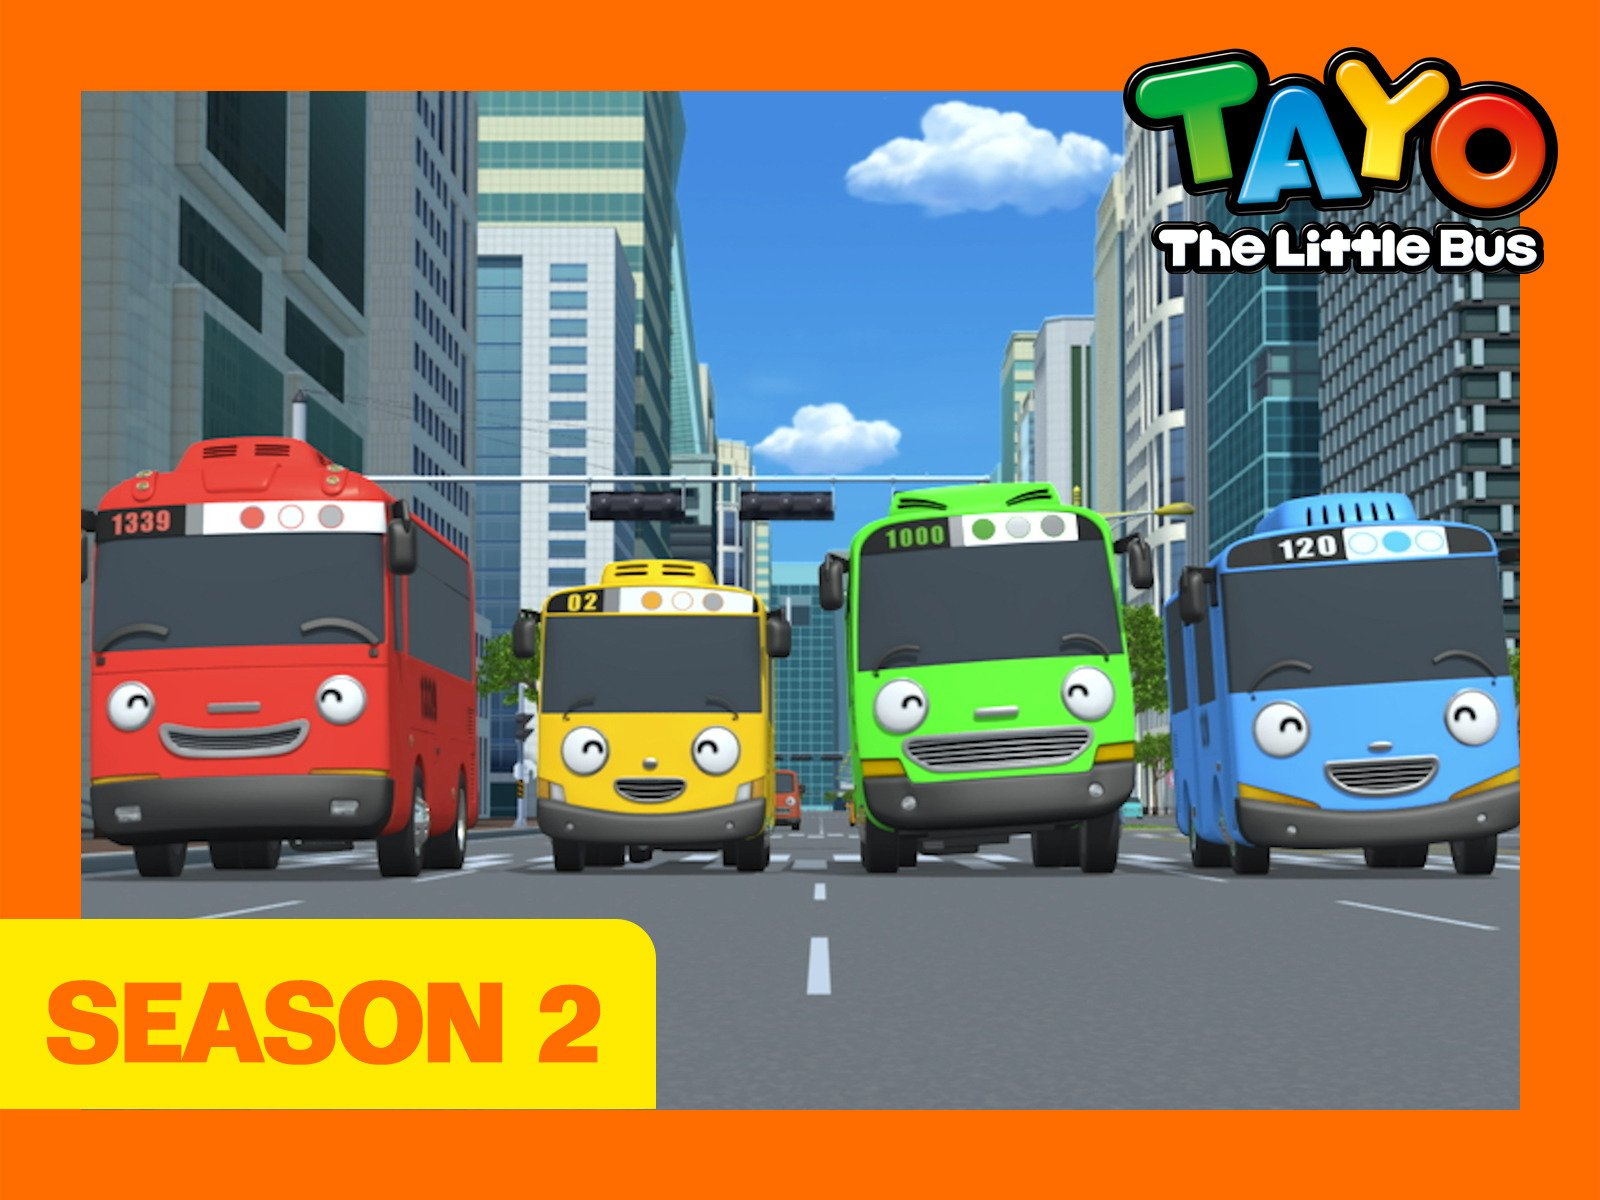 Tayo the Little Bus - Season 2